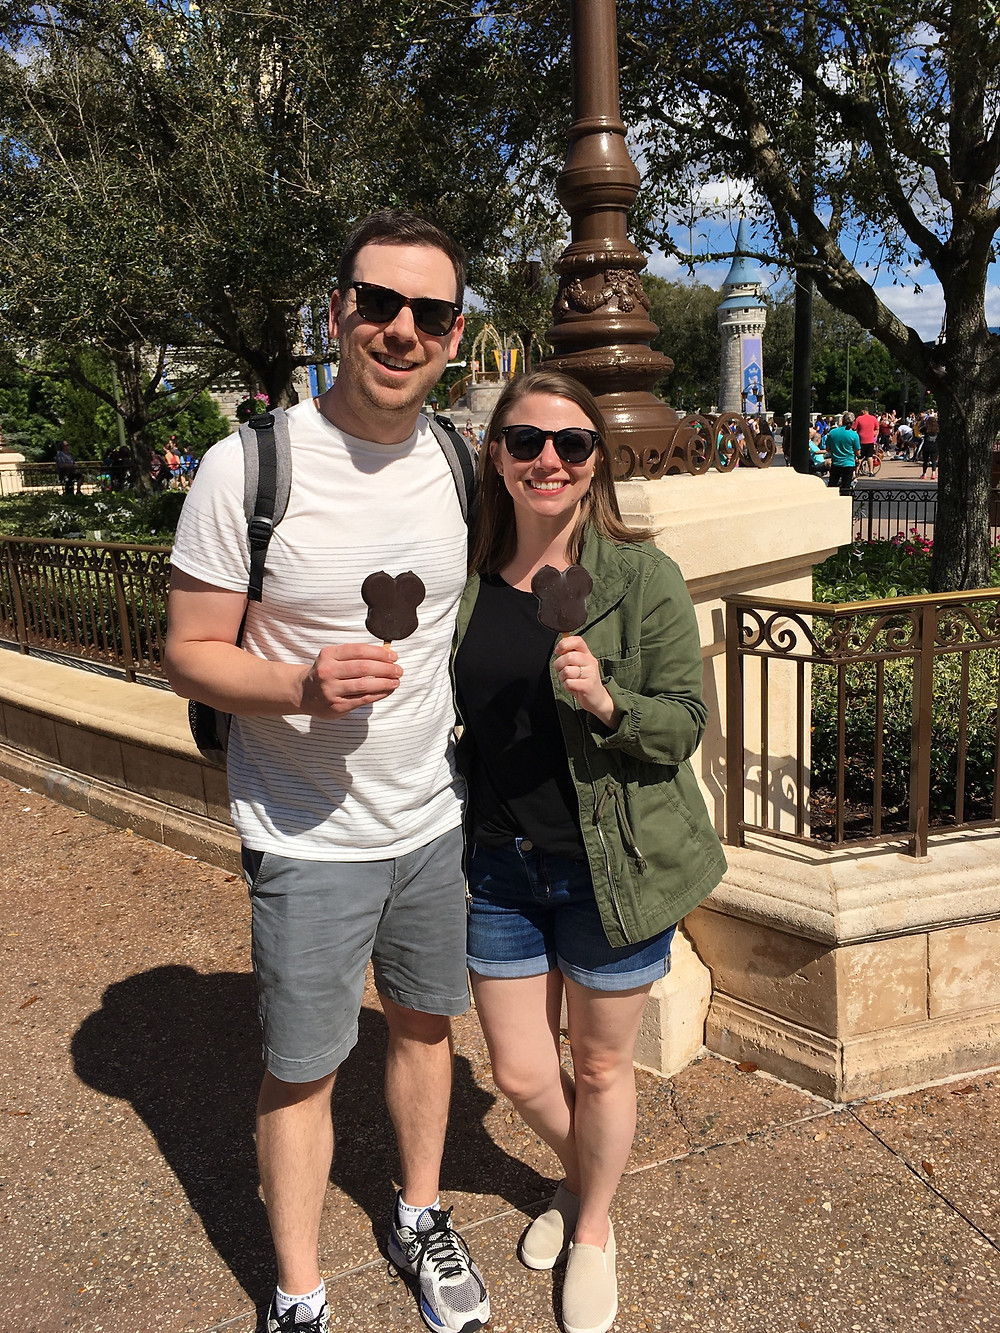 Two people eating a Mickey Ice Cream at Magic Kingdom